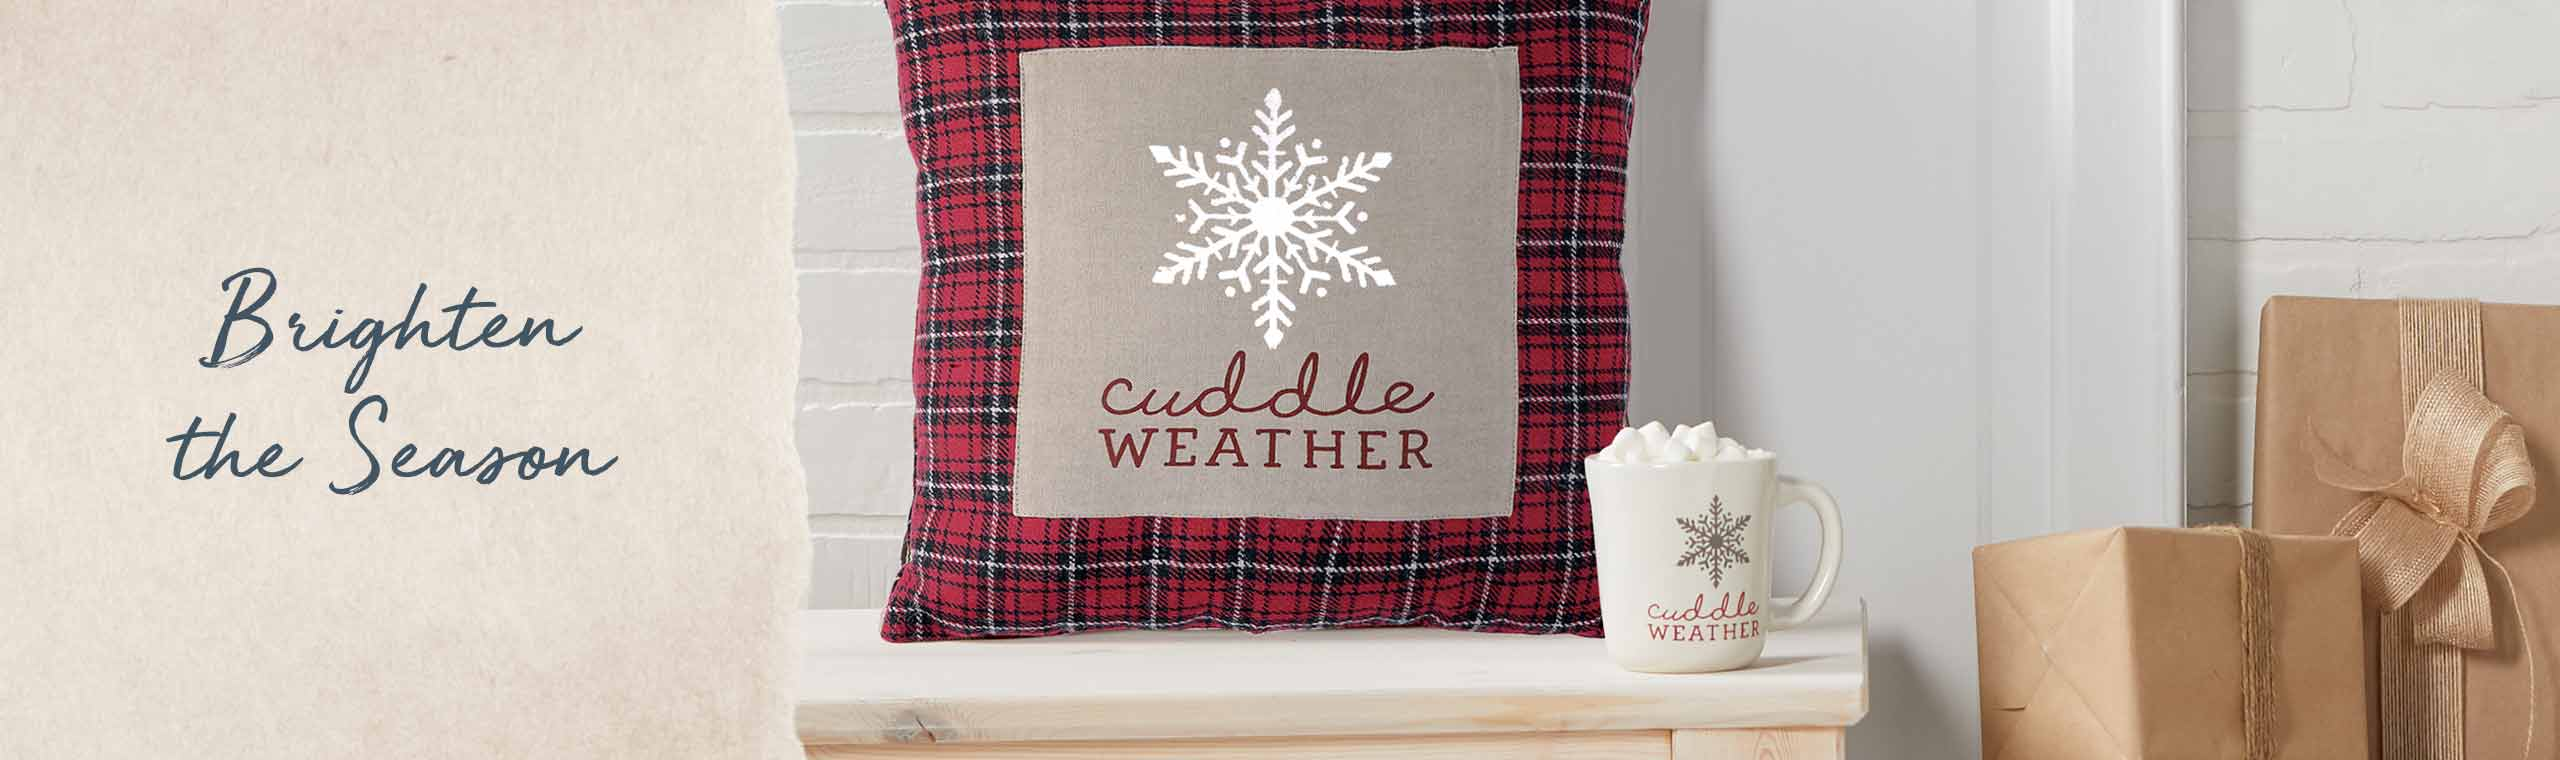 Brighten the season. Pillow and mug setting on a wooden bench, both decorated in the words Cuddle Weather.